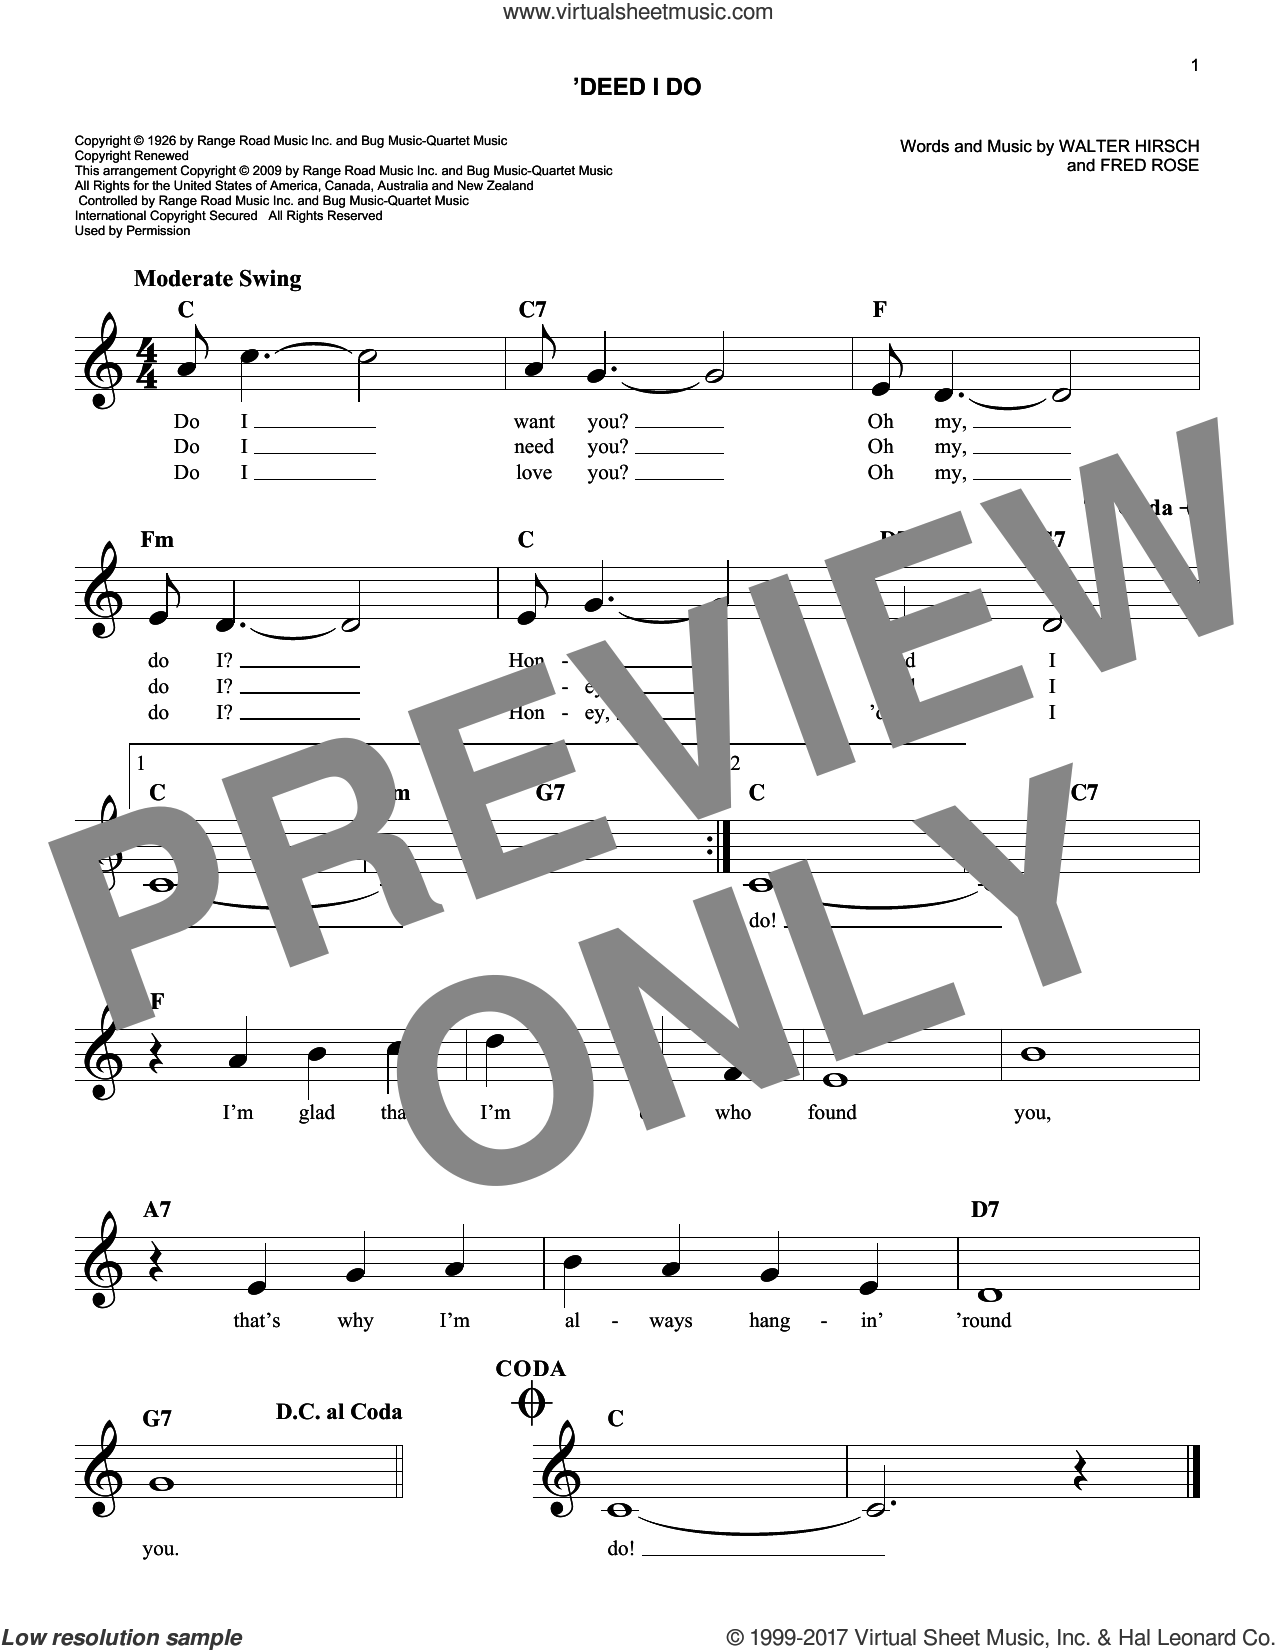 'Deed I Do sheet music for voice and other instruments (fake book) by Fred Rose and Walter Hirsch, intermediate skill level